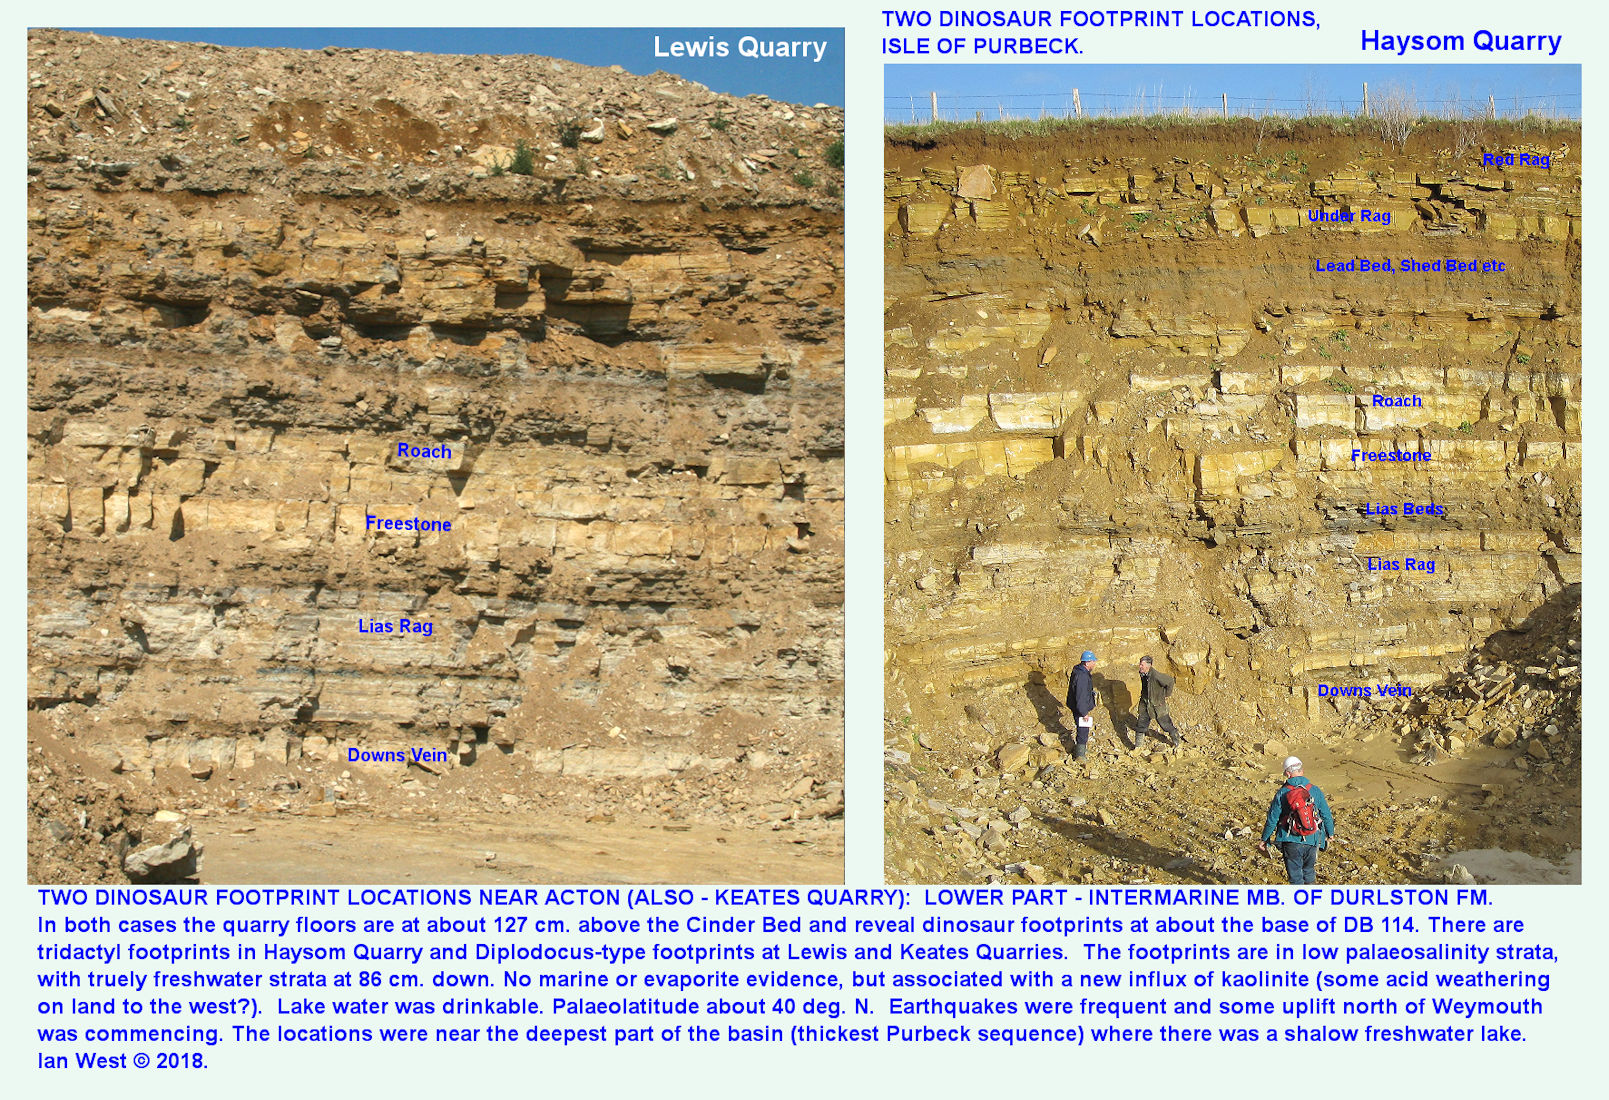 A similar Durlston Formation, upper part of Middle Purbeck, at Lewis Quarry and at Haysom's Quarry near Acton, west of Swanage, Dorset, both showing an almost identical sequence of the lower part of the Intermarine Member